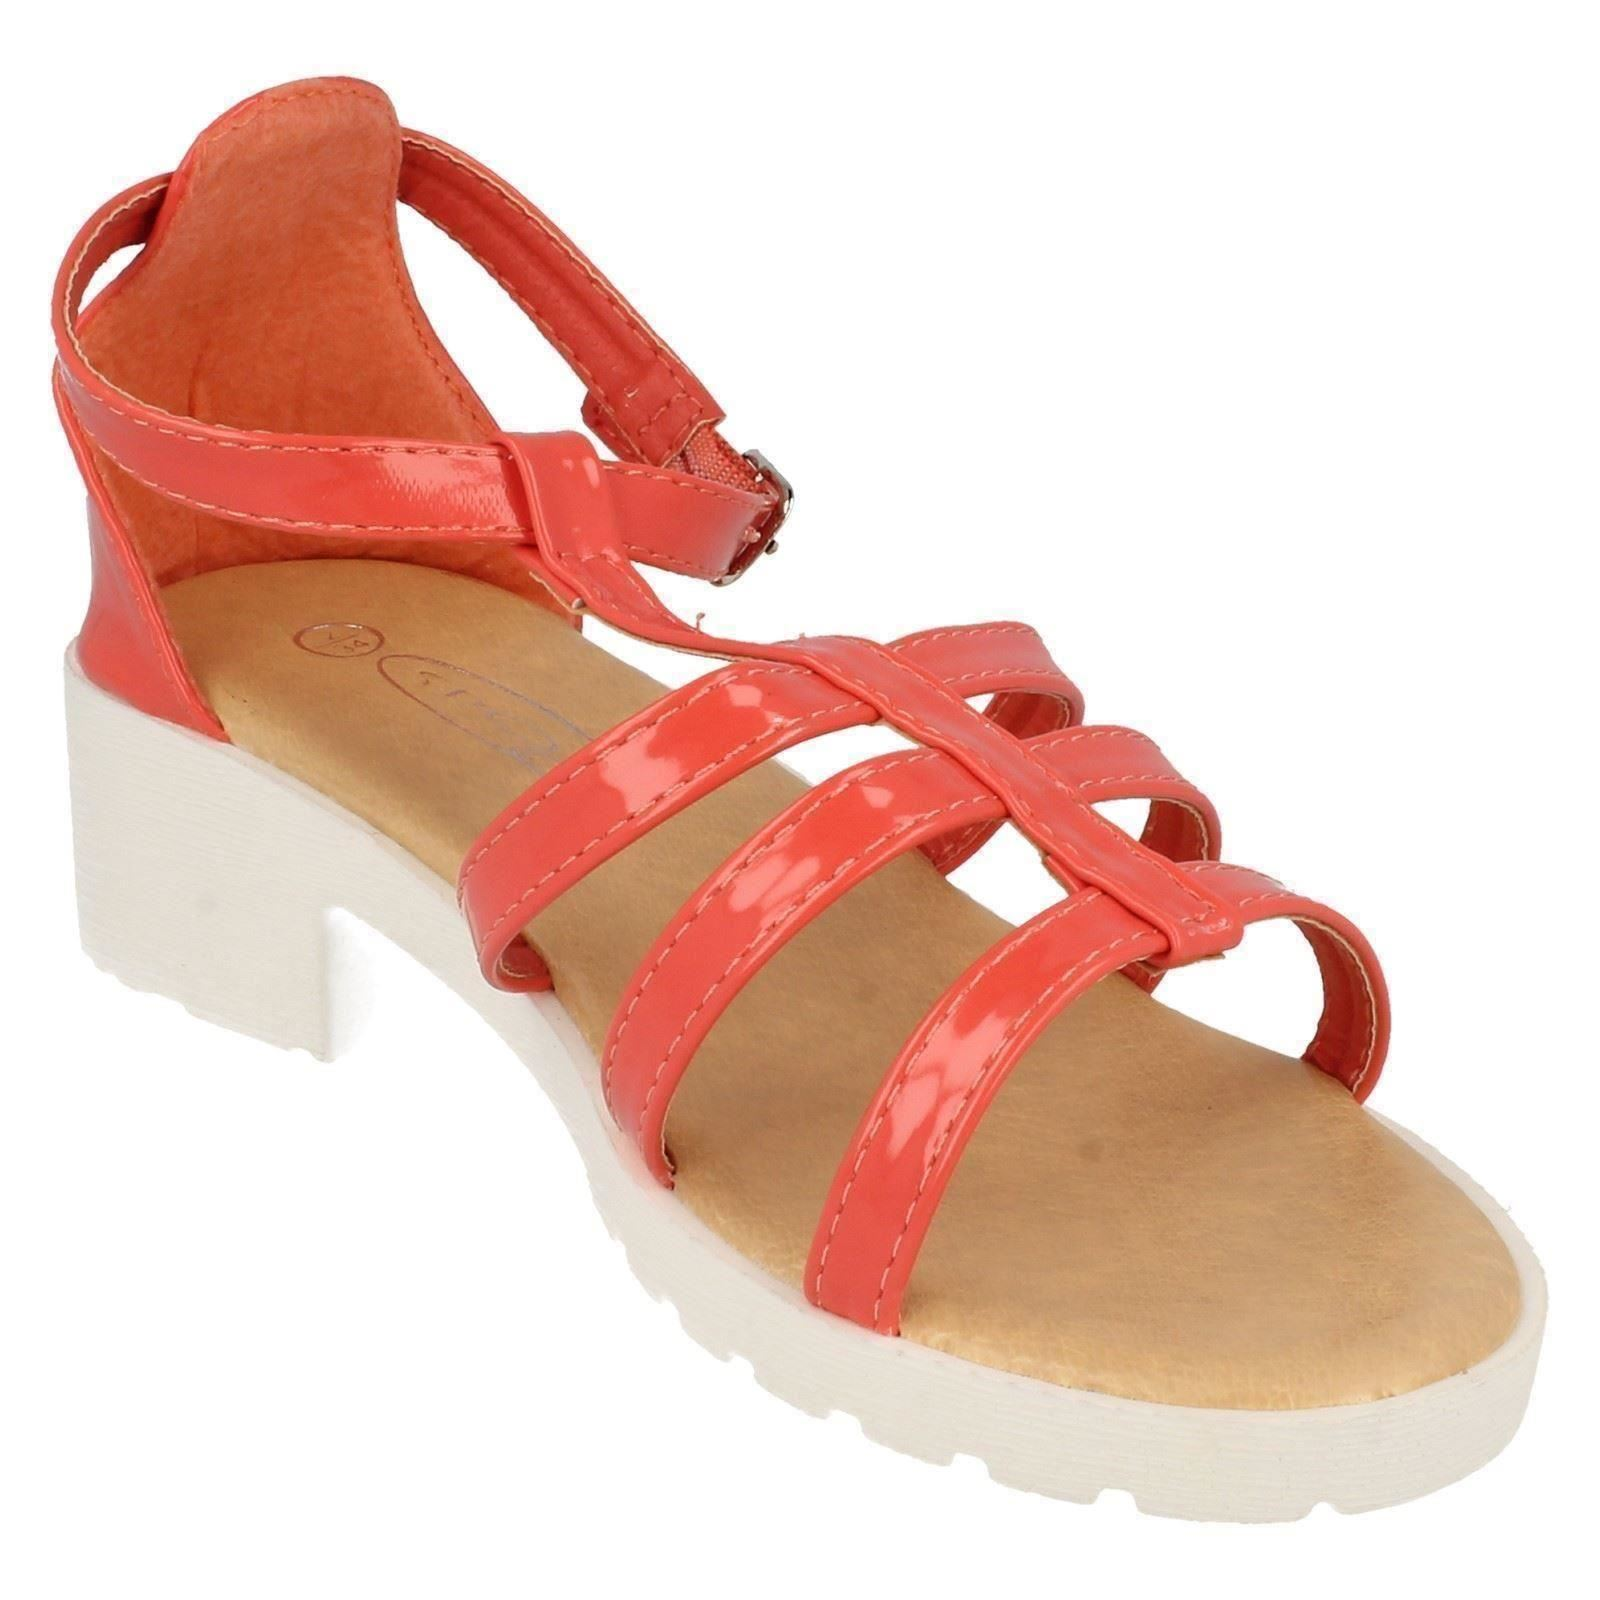 Girls Spot On Heeled Strappy Sandals The Style H1065 ~ N